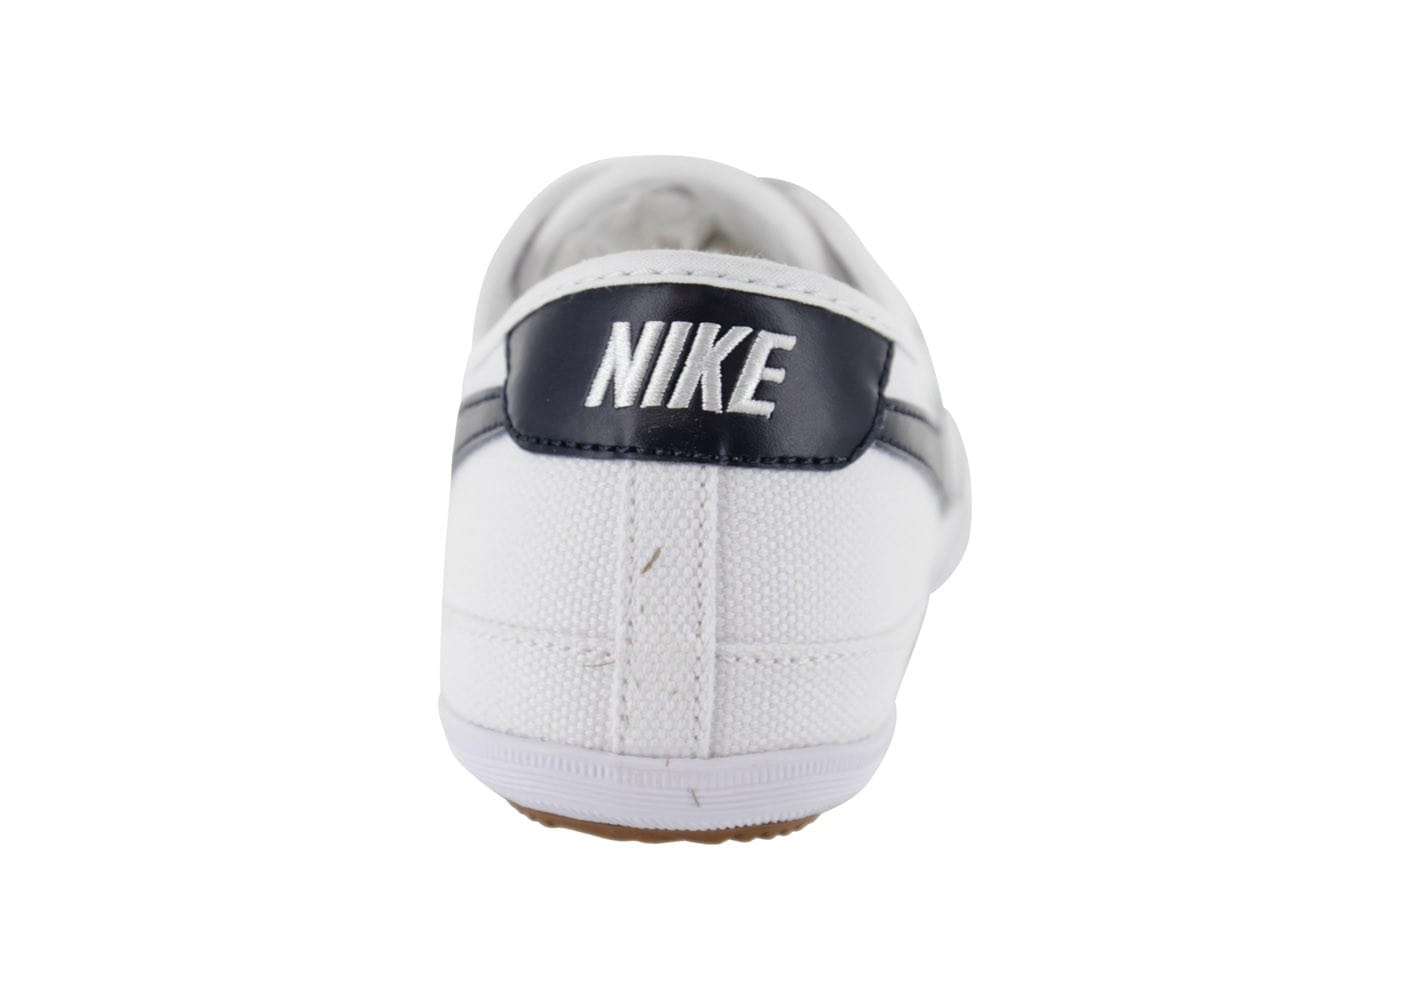 Chaussures Toile Flash Nike Chausport Baskets Blanche Homme HYeE9IbD2W